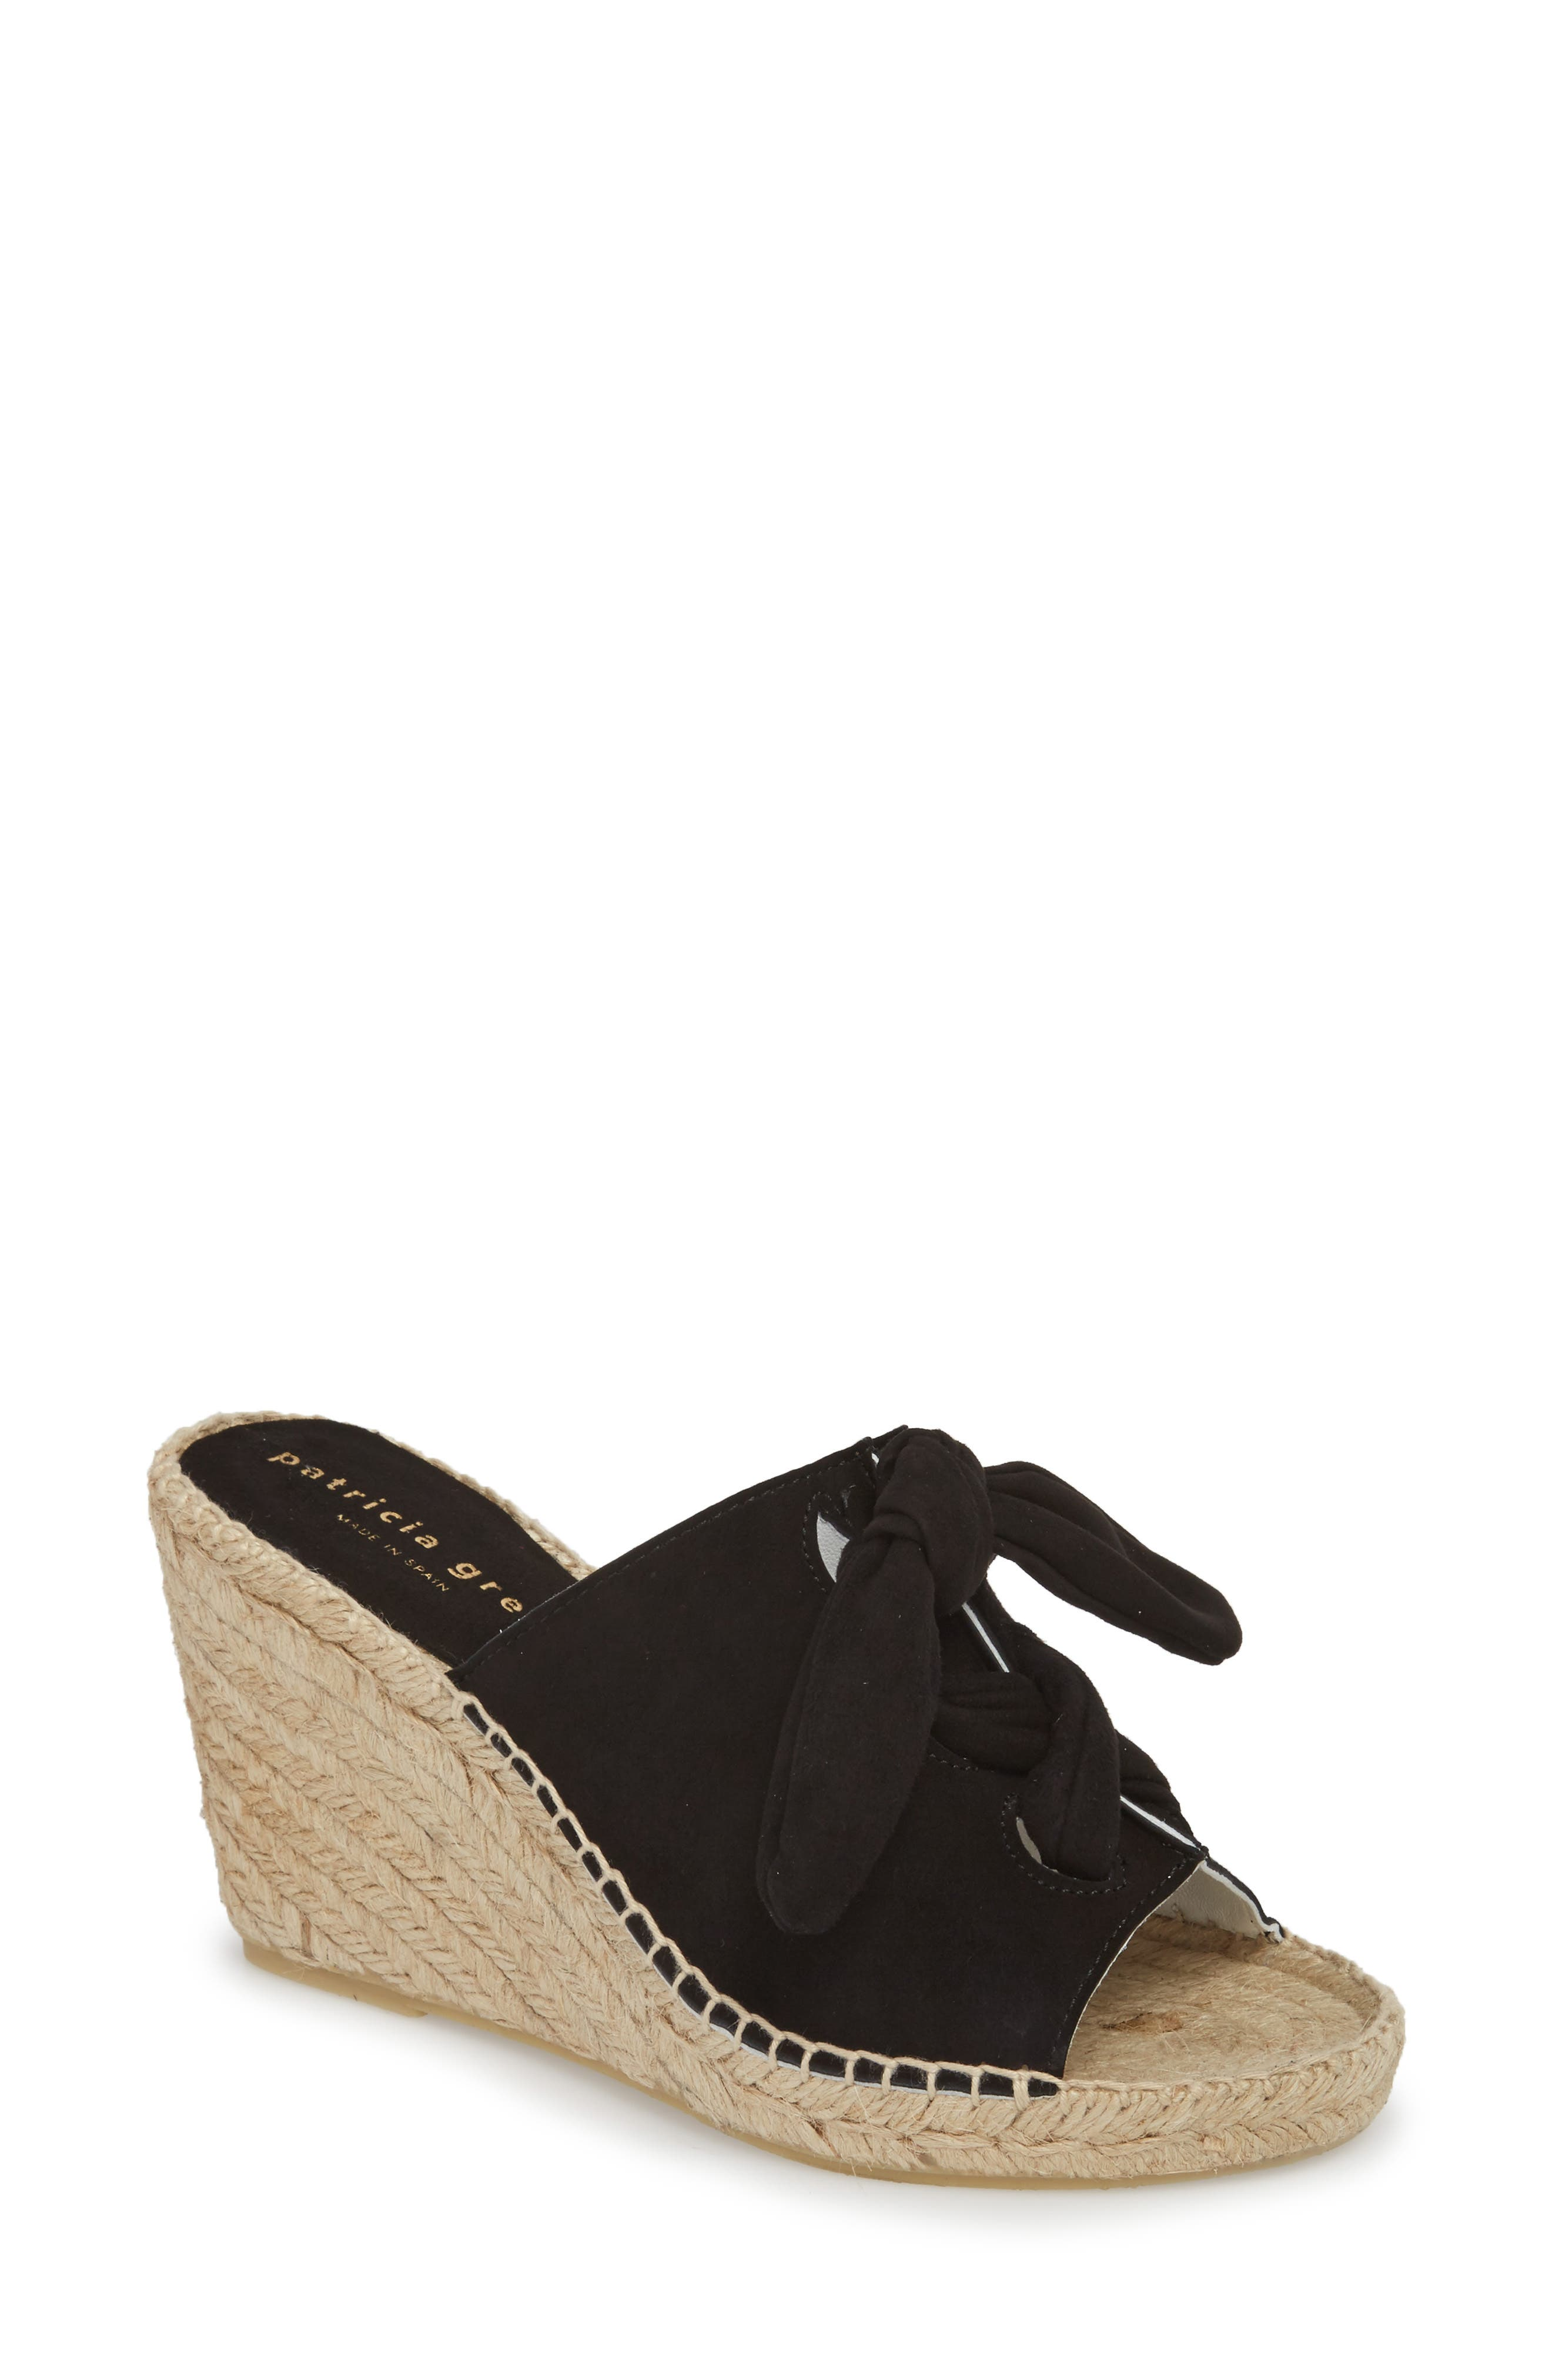 Flirt Espadrille Wedge Sandal,                             Main thumbnail 1, color,                             Black Suede